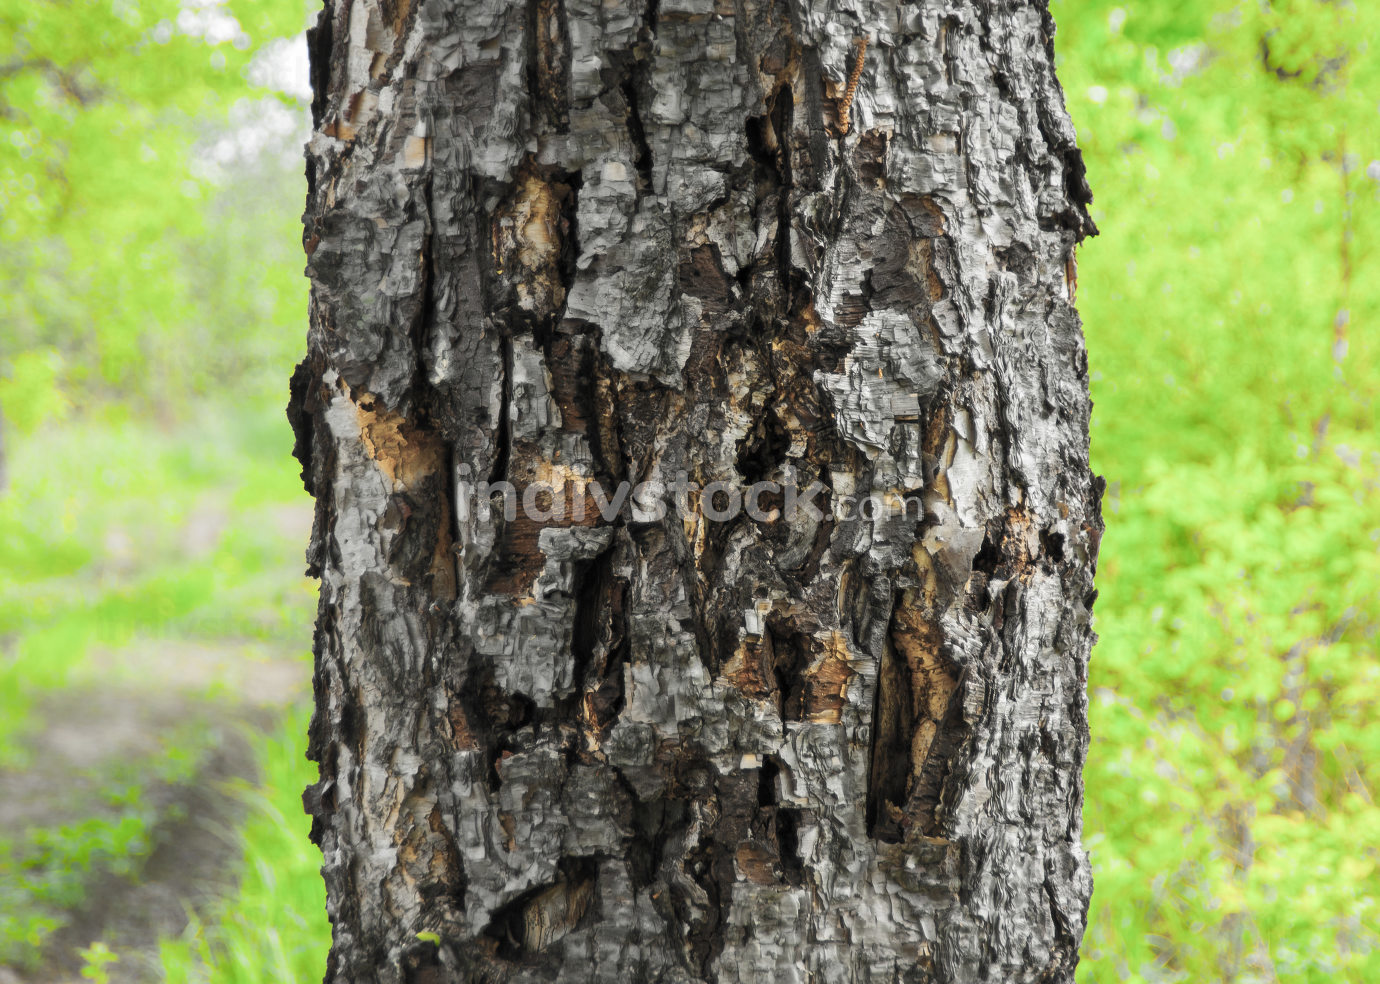 The tree dies, the bark dries up